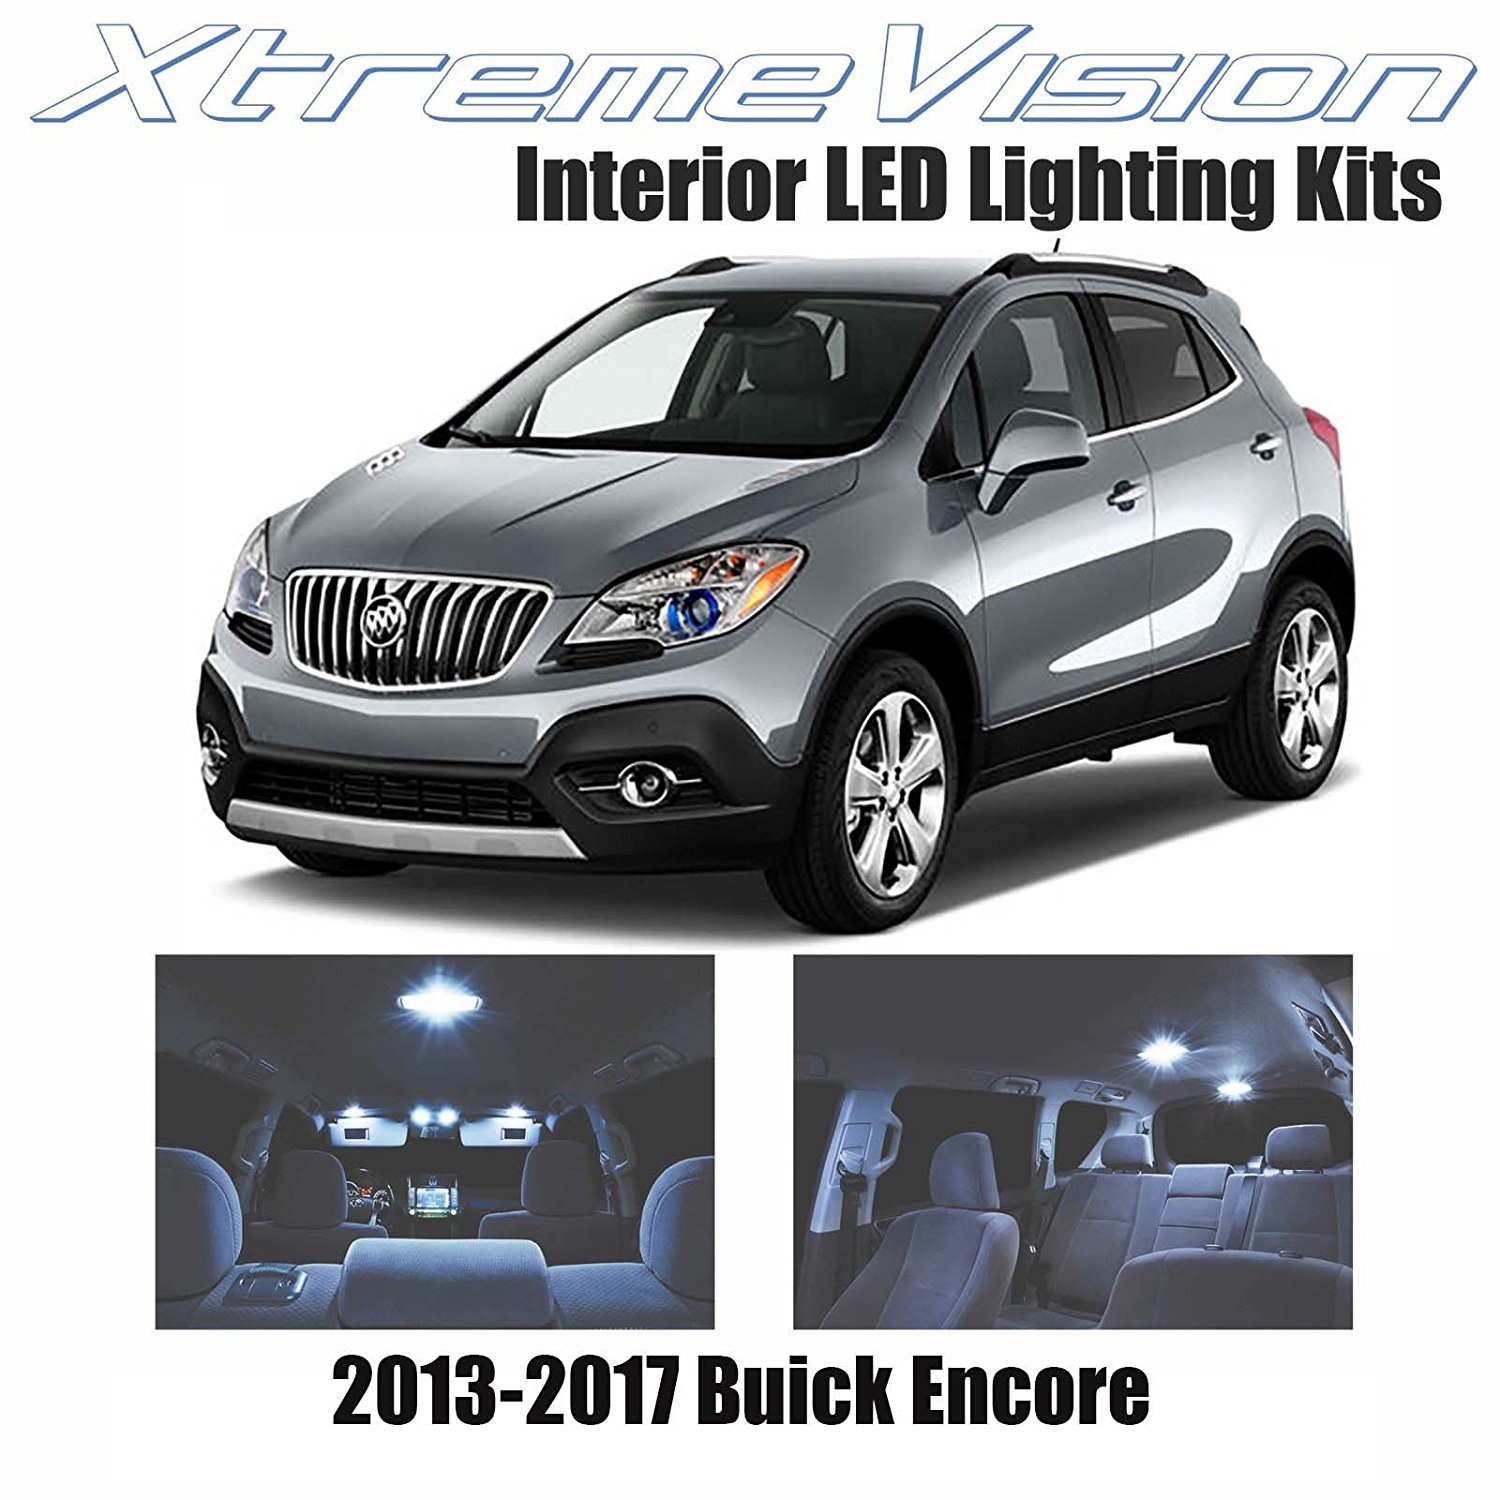 XtremeVision LED for Buick Encore 2013-2017 (5 Pieces) Cool White Premium Interior LED Kit Package + Installation Tool